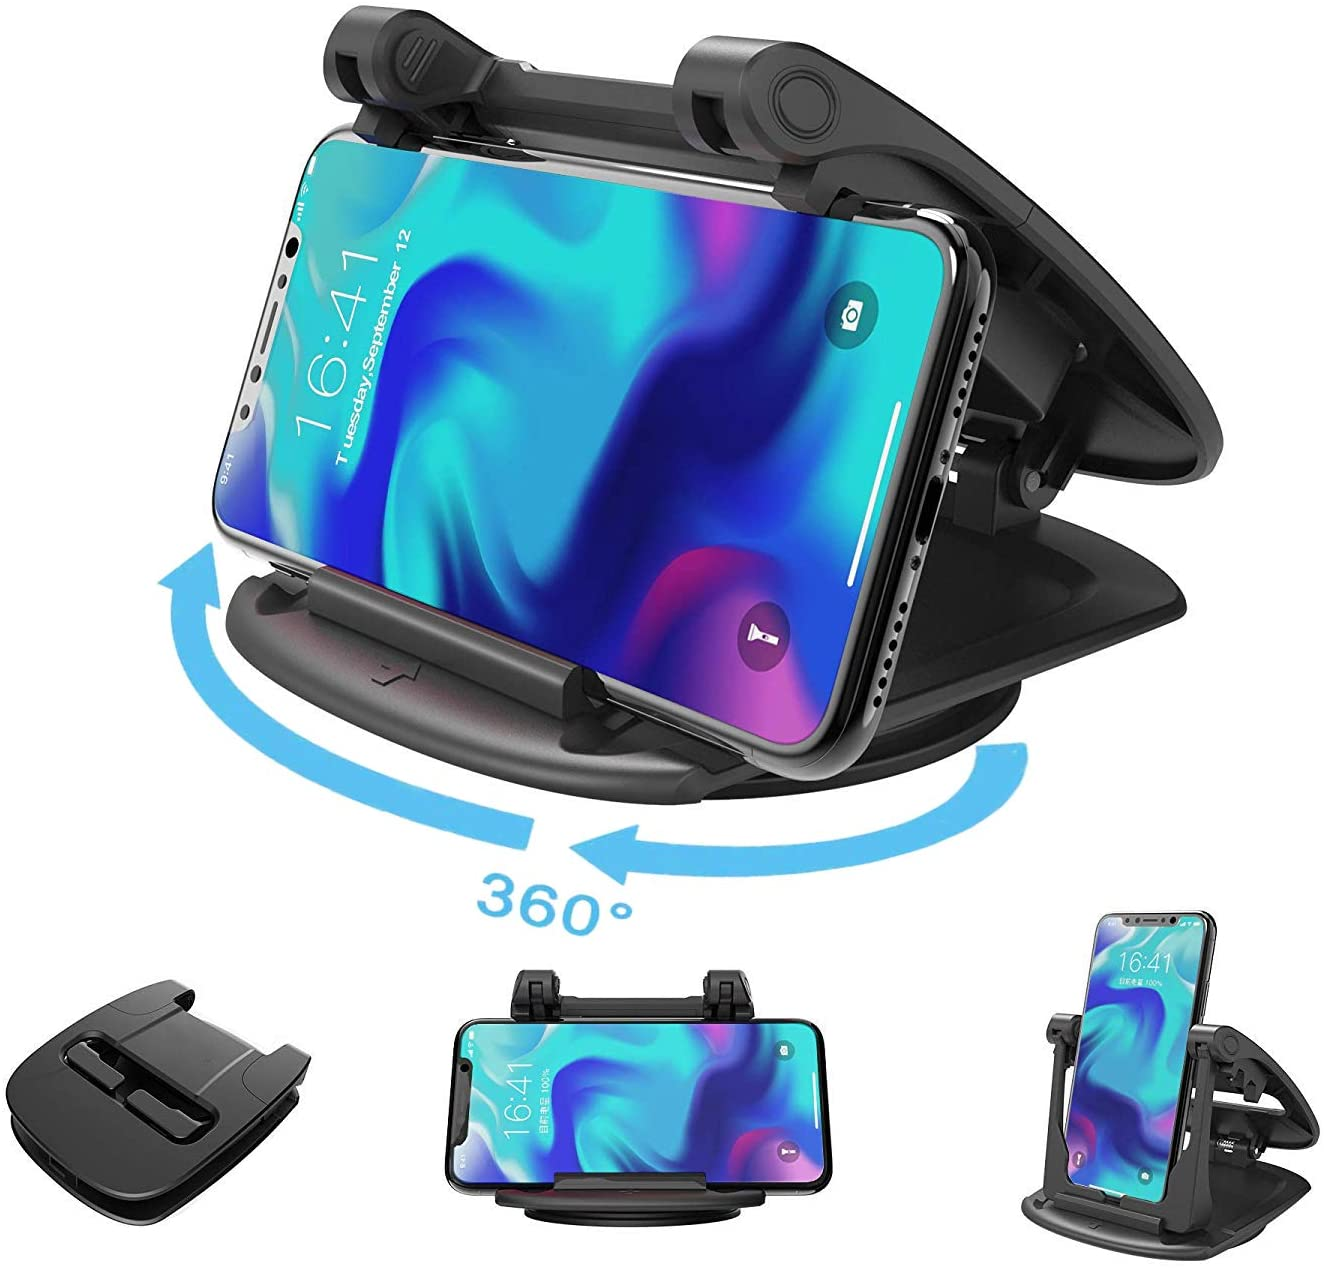 HF-N1C-SH: Universal 360 Degree Rotatable Car Dashboard Phone Mount Hold Phones Vertically/Horizontally,Car Cell Phone Holder Compatible with GPS,iPhone 7 6 6s X XS 8 Plus Samsung S9 S8 S7 S6 Note 8 Google